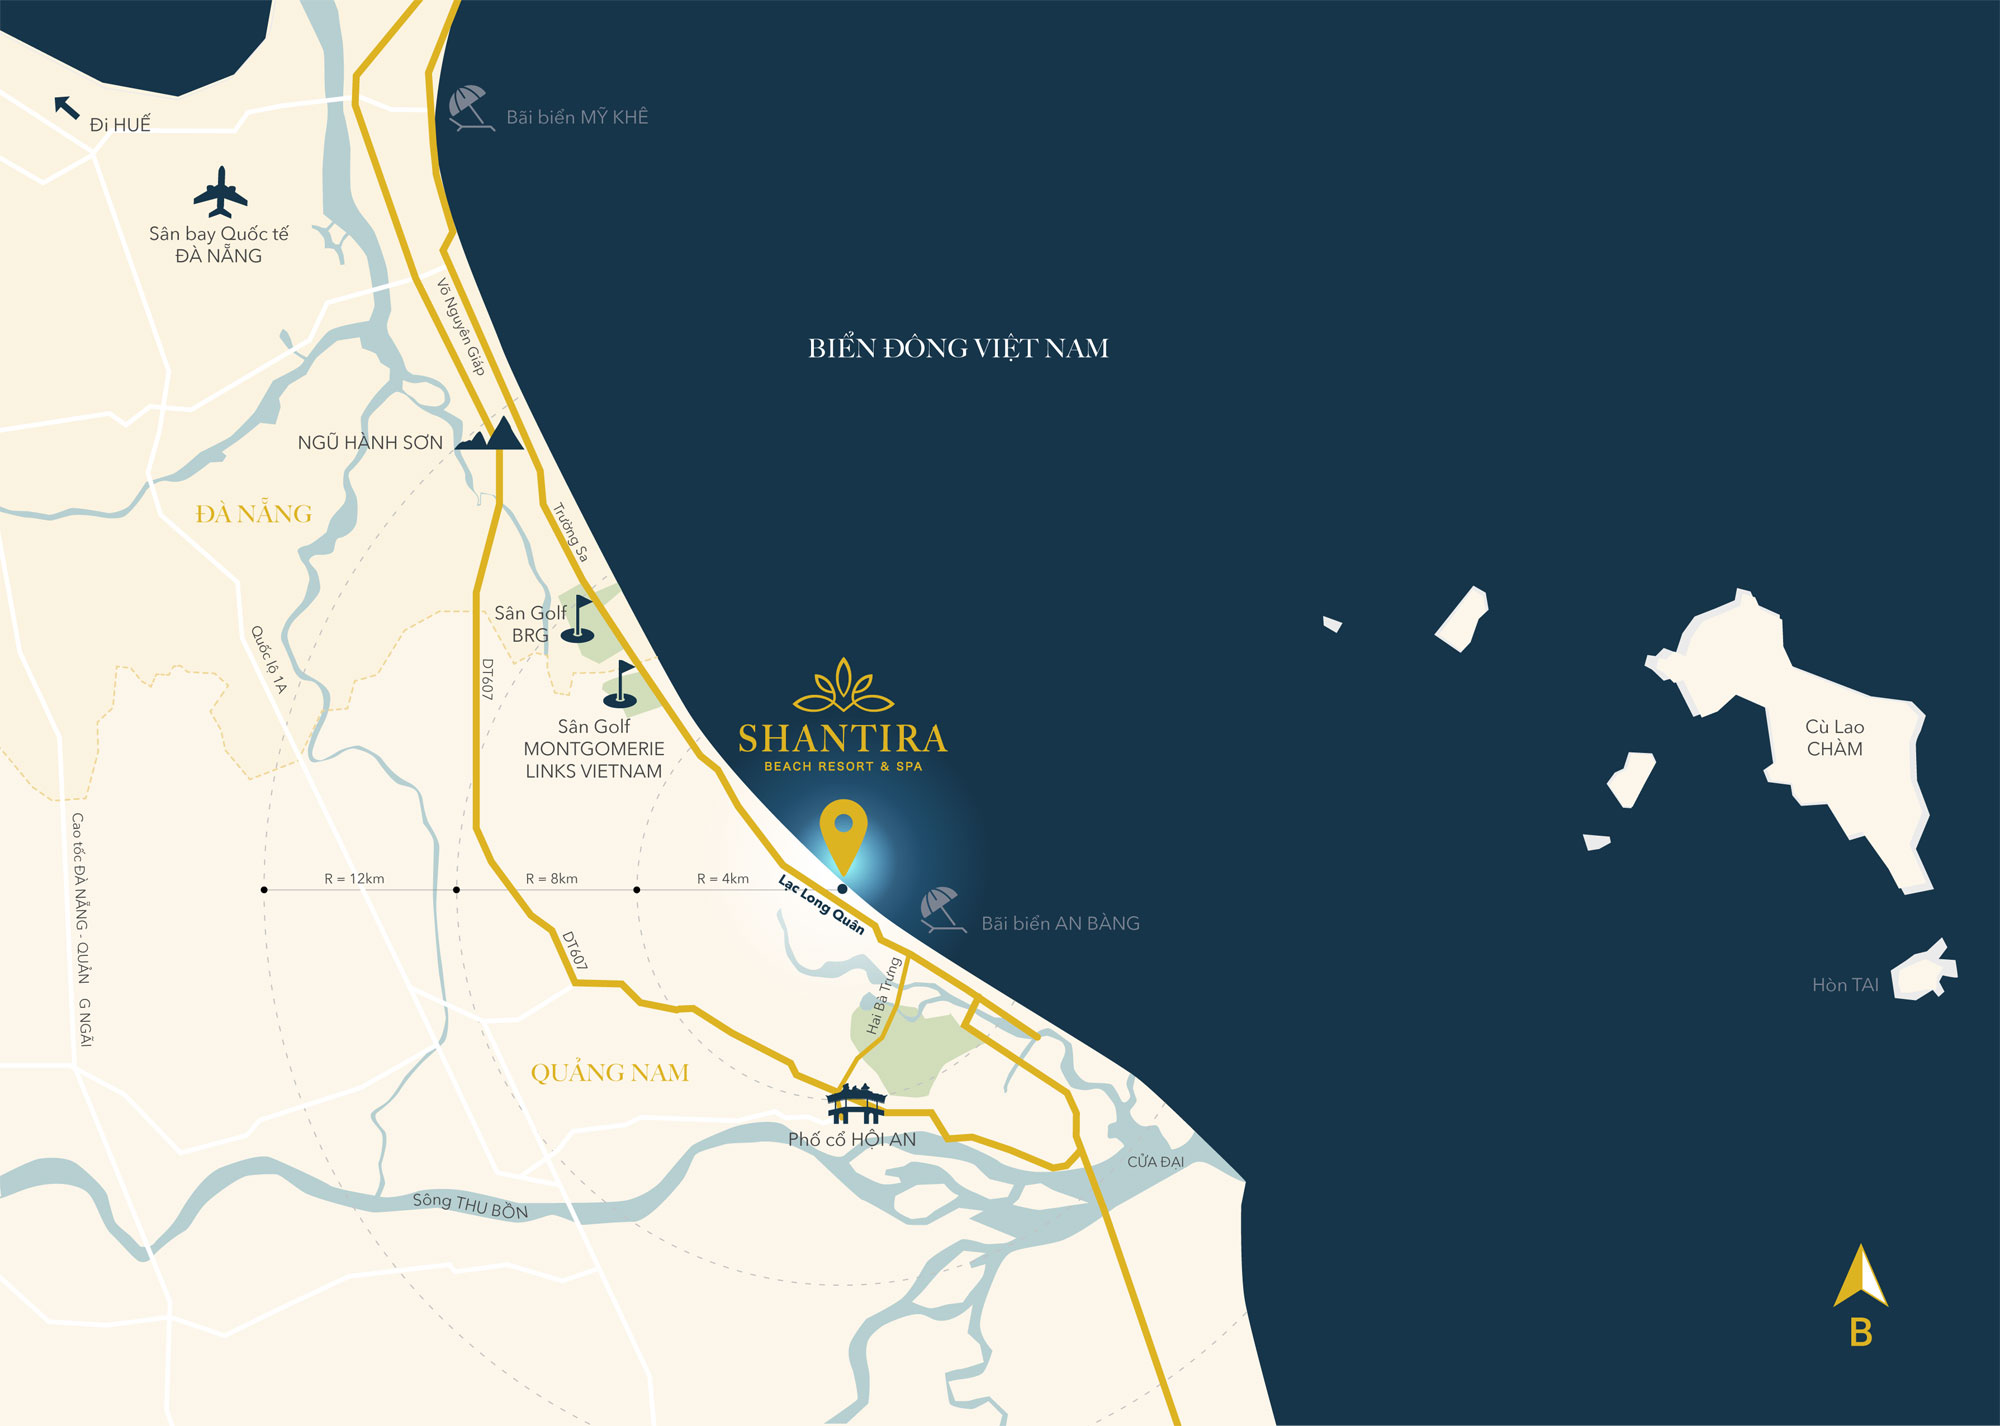 shantira beach resort and spa location